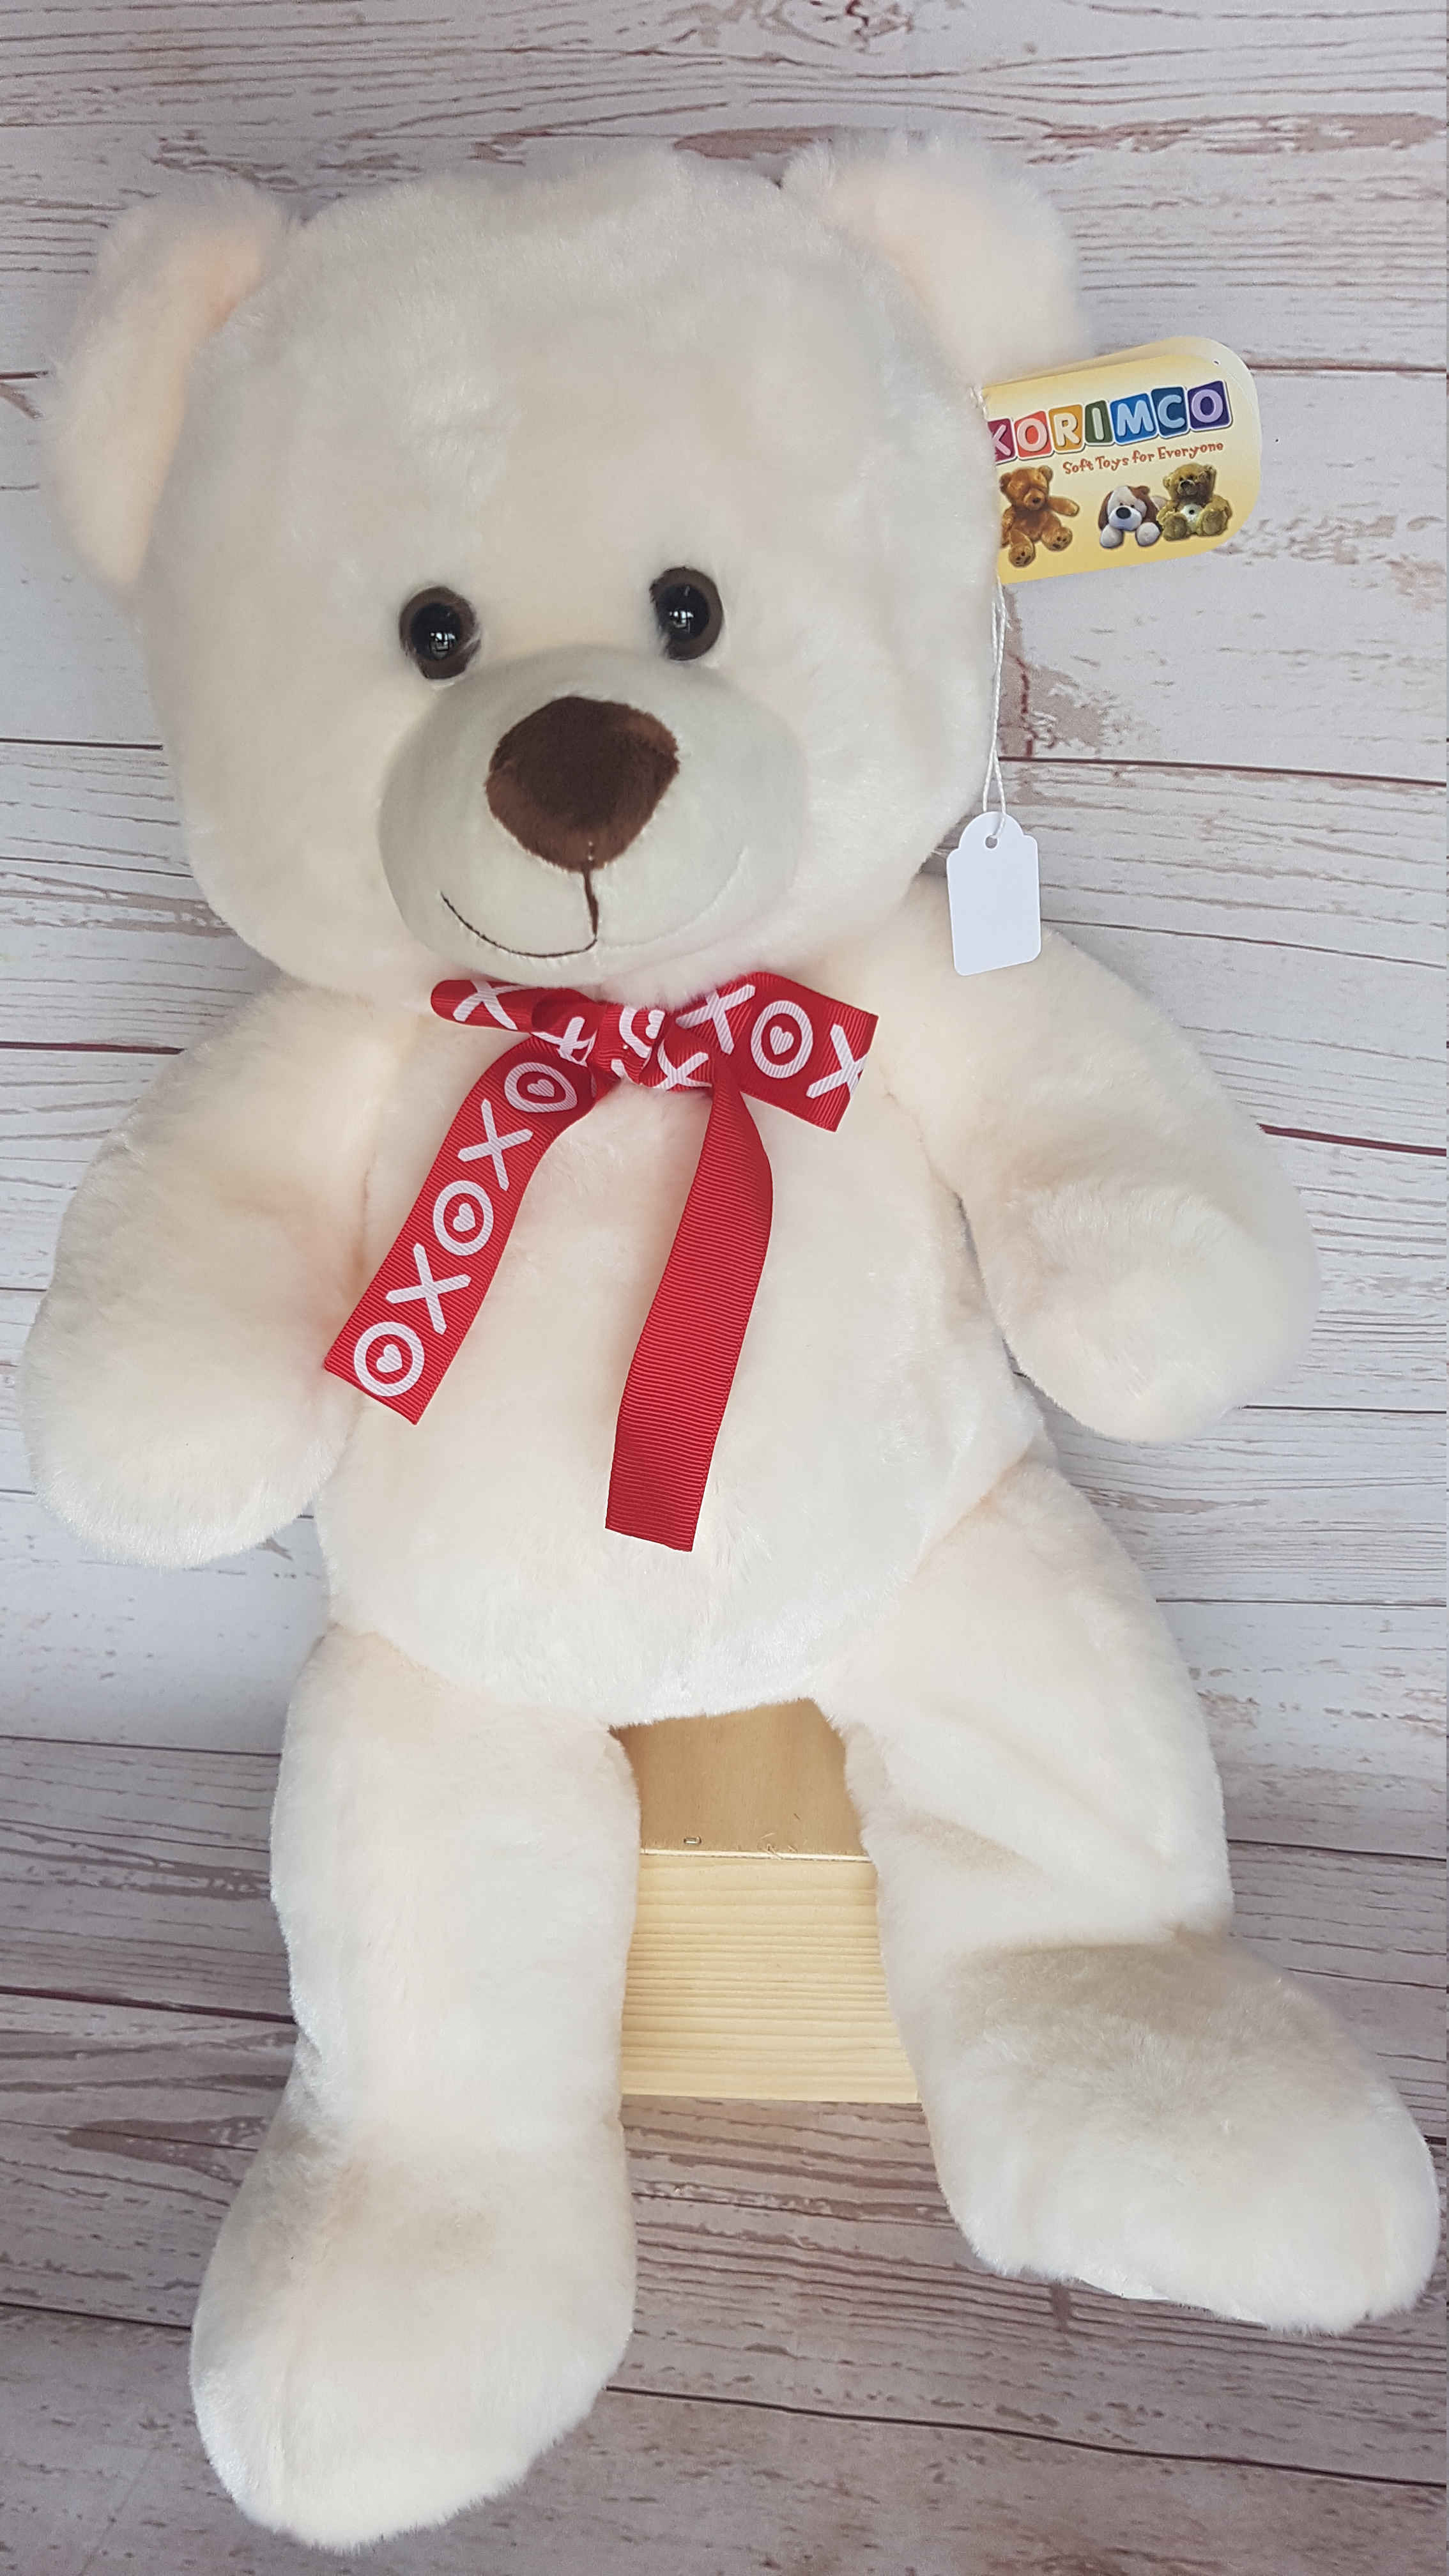 Kisses and cuddles, the cute, soft white bear who will be there to cuddle when you can't.